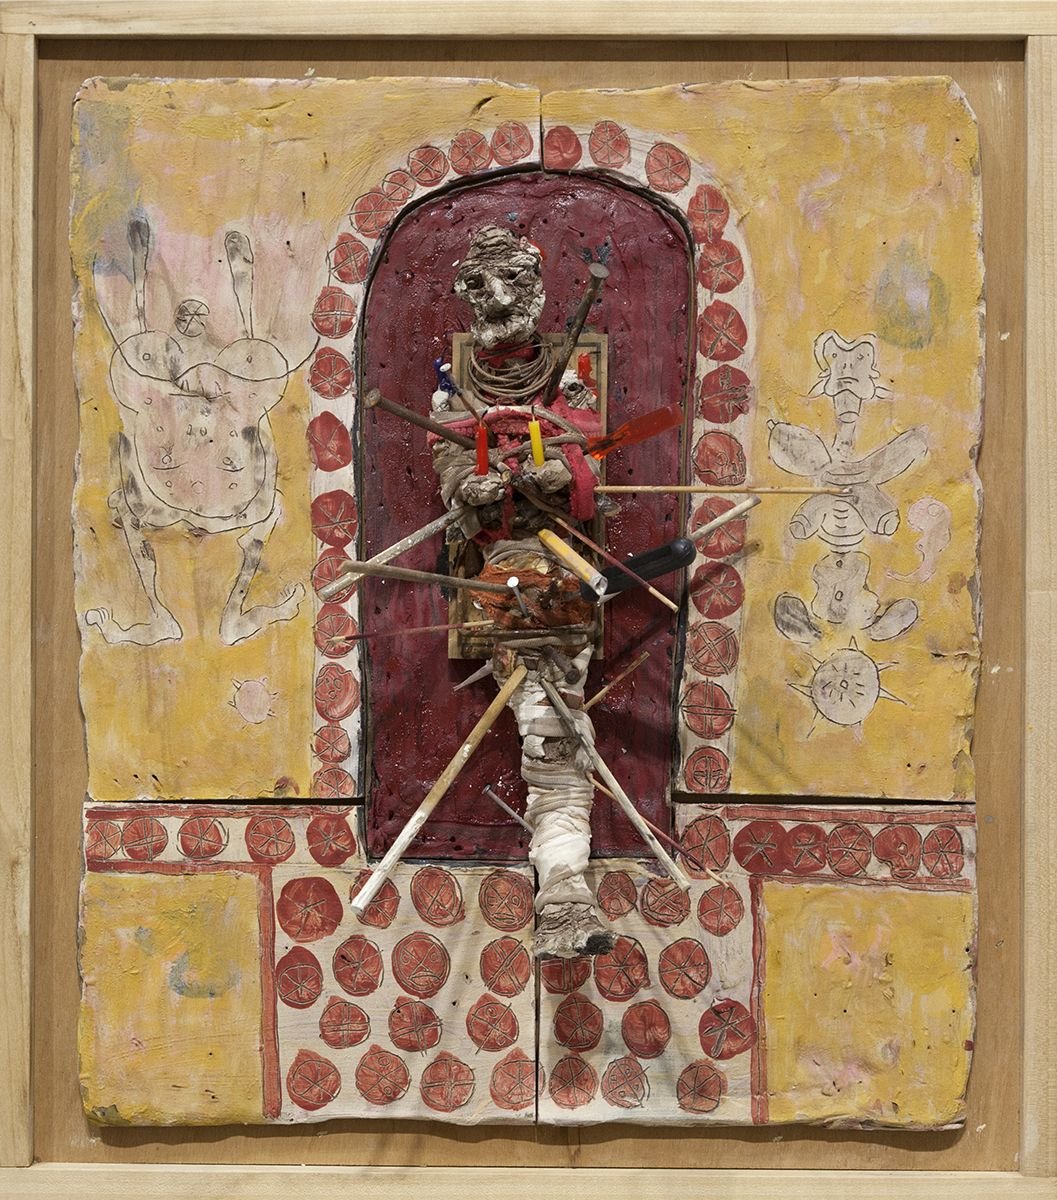 Richard Hawkins  Judas of Norogachi, 2016  Glazed ceramic, air-dry clay, rat trap, pig's blood, rags, candles and utensils in artist's frame  25 3/4 x 22 3/4 x 10 1/2 inches (65.4 x 57.8 x 26.7 cm)